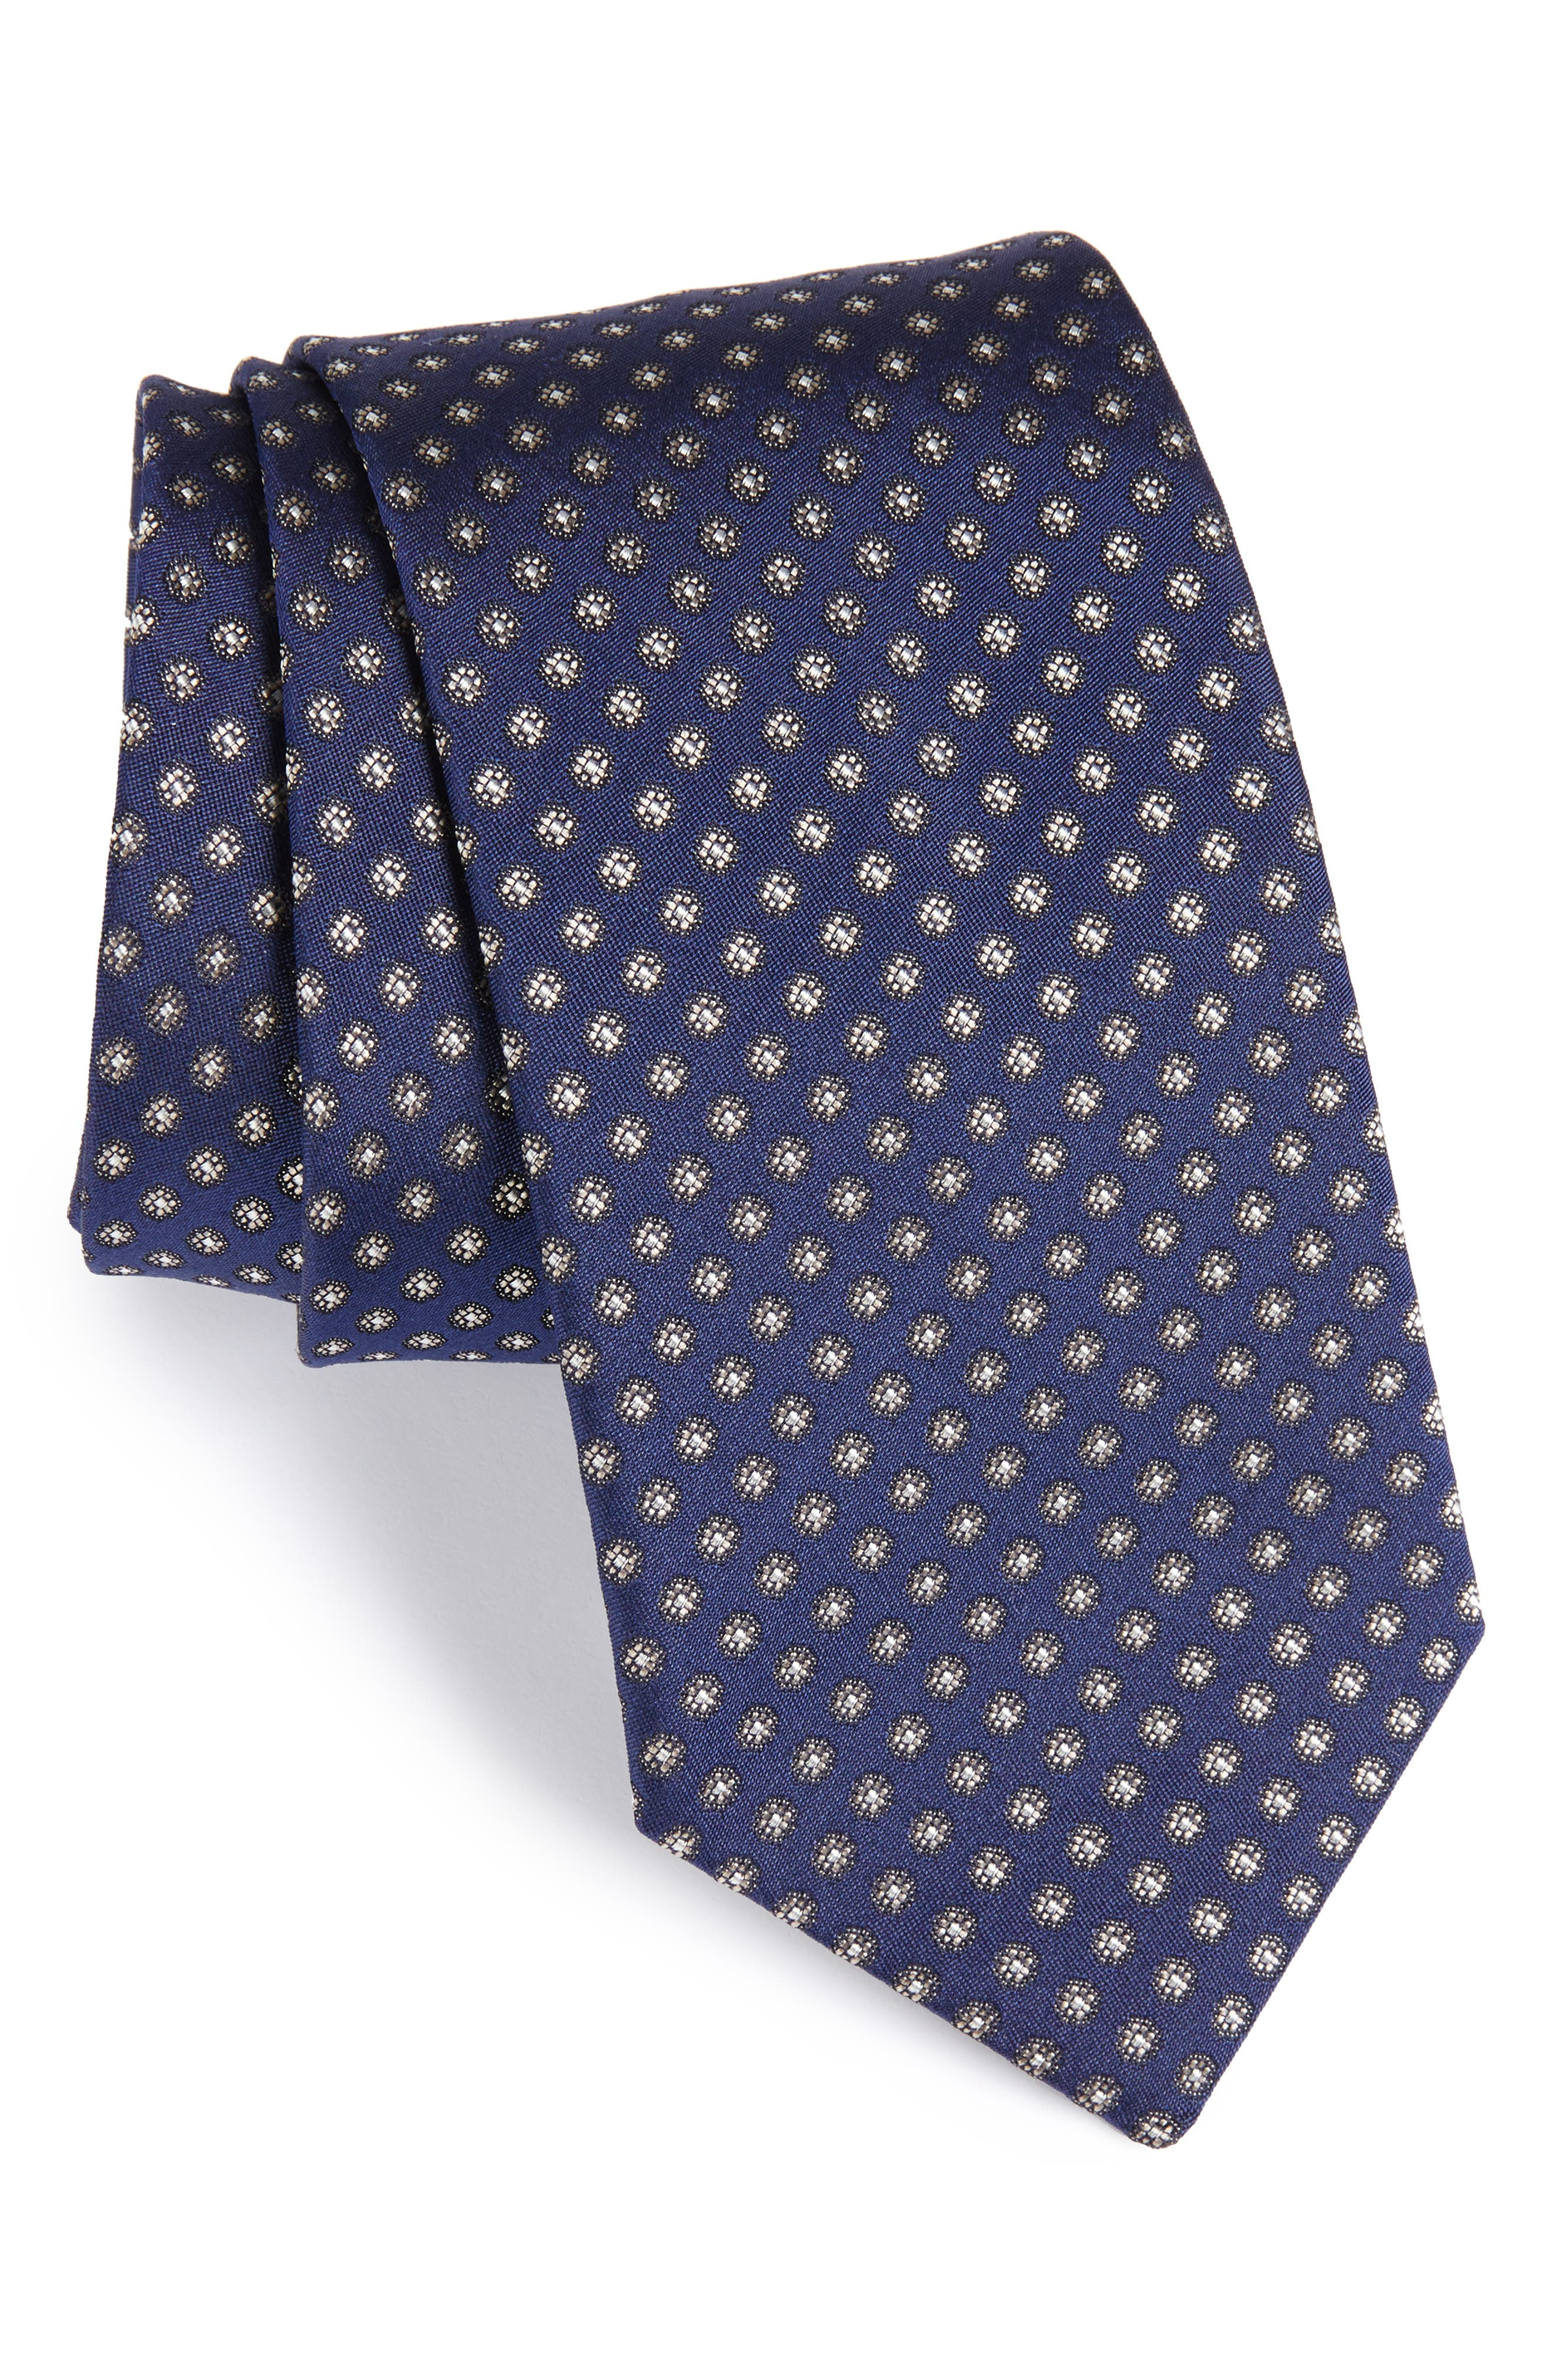 Floral Silk Tie,                             Main thumbnail 1, color,                             NAVY/ BROWN